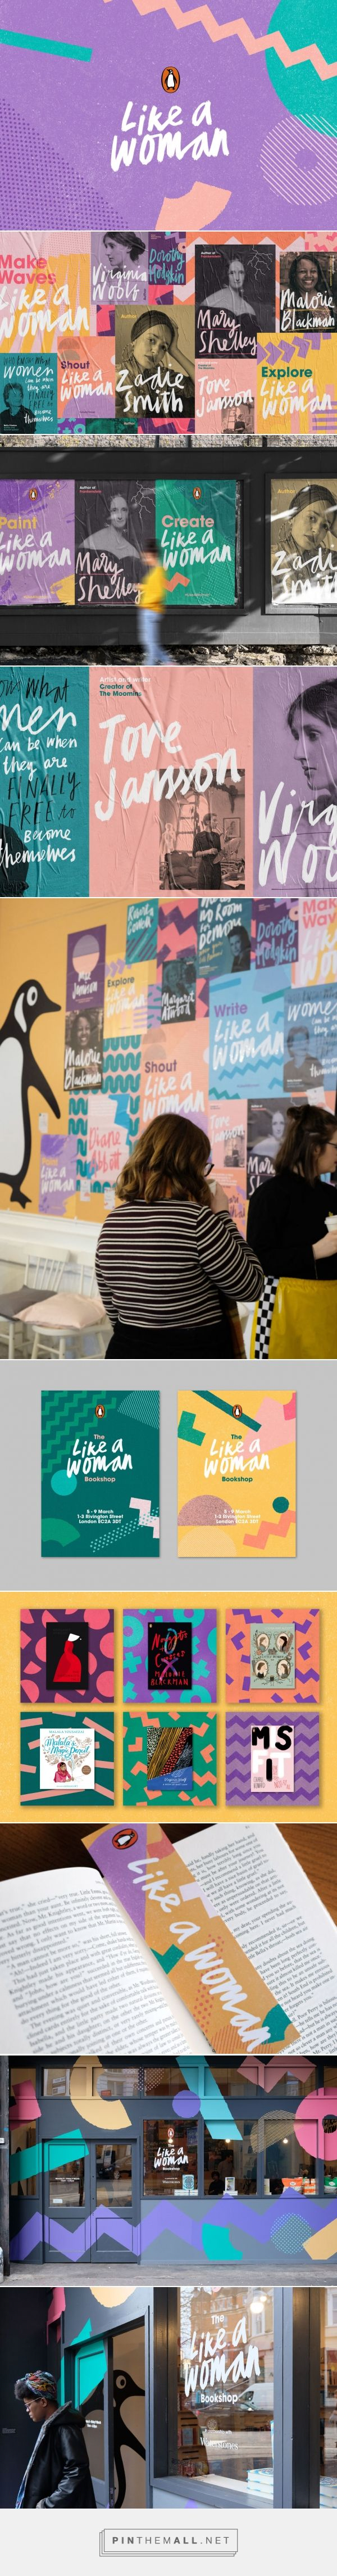 Like a Woman Pop-up Bookshop Branding by Fieldwork | Fivestar Branding Agency – Design and Branding Agency & Curated Inspiration Gallery #bookstore #likeawoman #branding #brand #brandinspiration #design #designinspiration